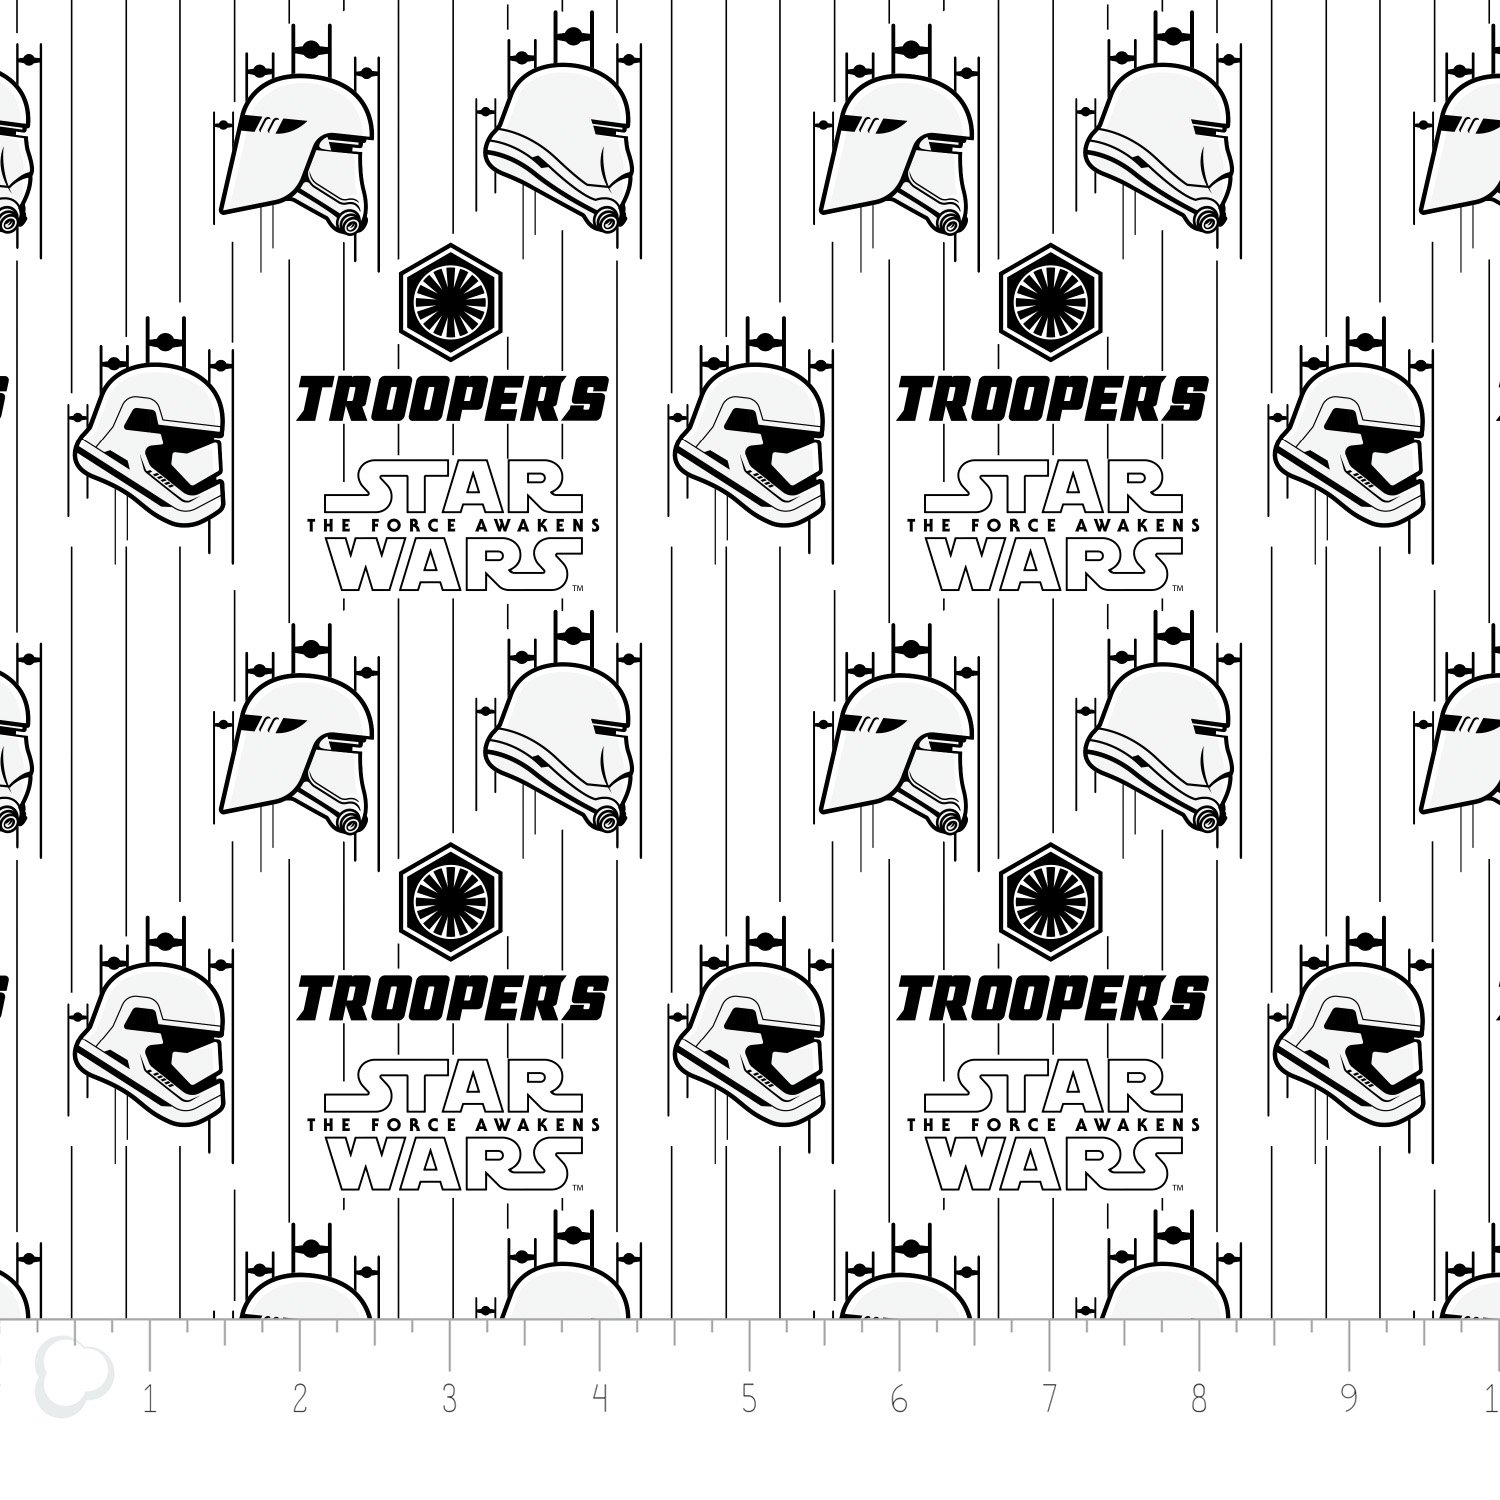 7360109-01 Stormtroopers-White